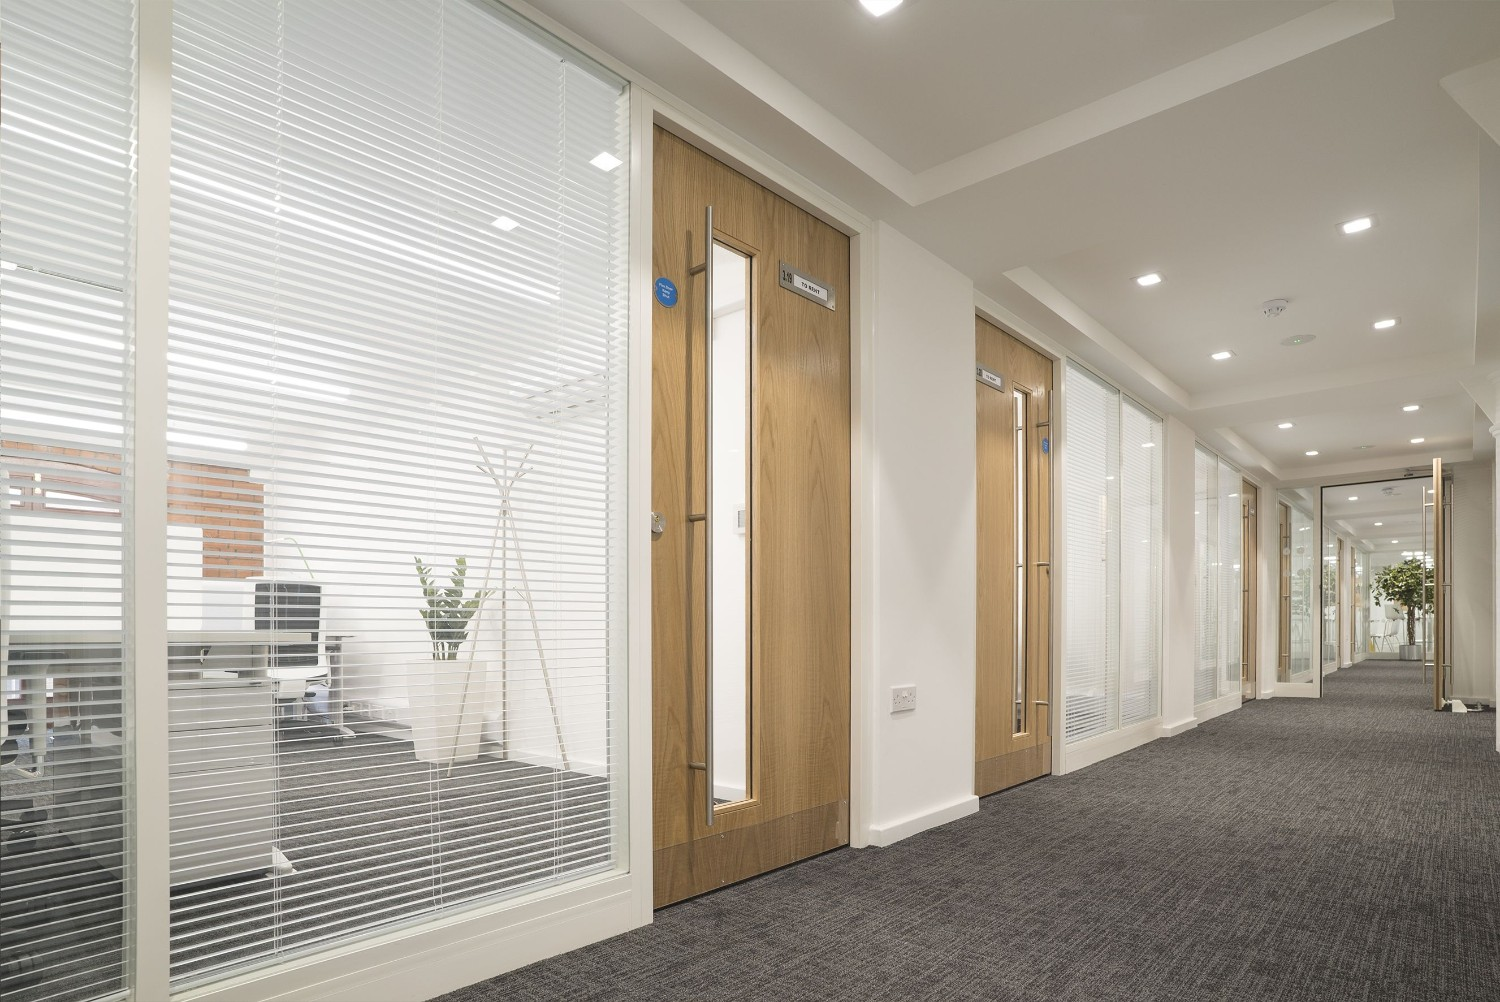 """ When you walk into the office, it is the first thing you see and we want it to make a lasting impression. "" - Office Manager The Maltings Ltd"